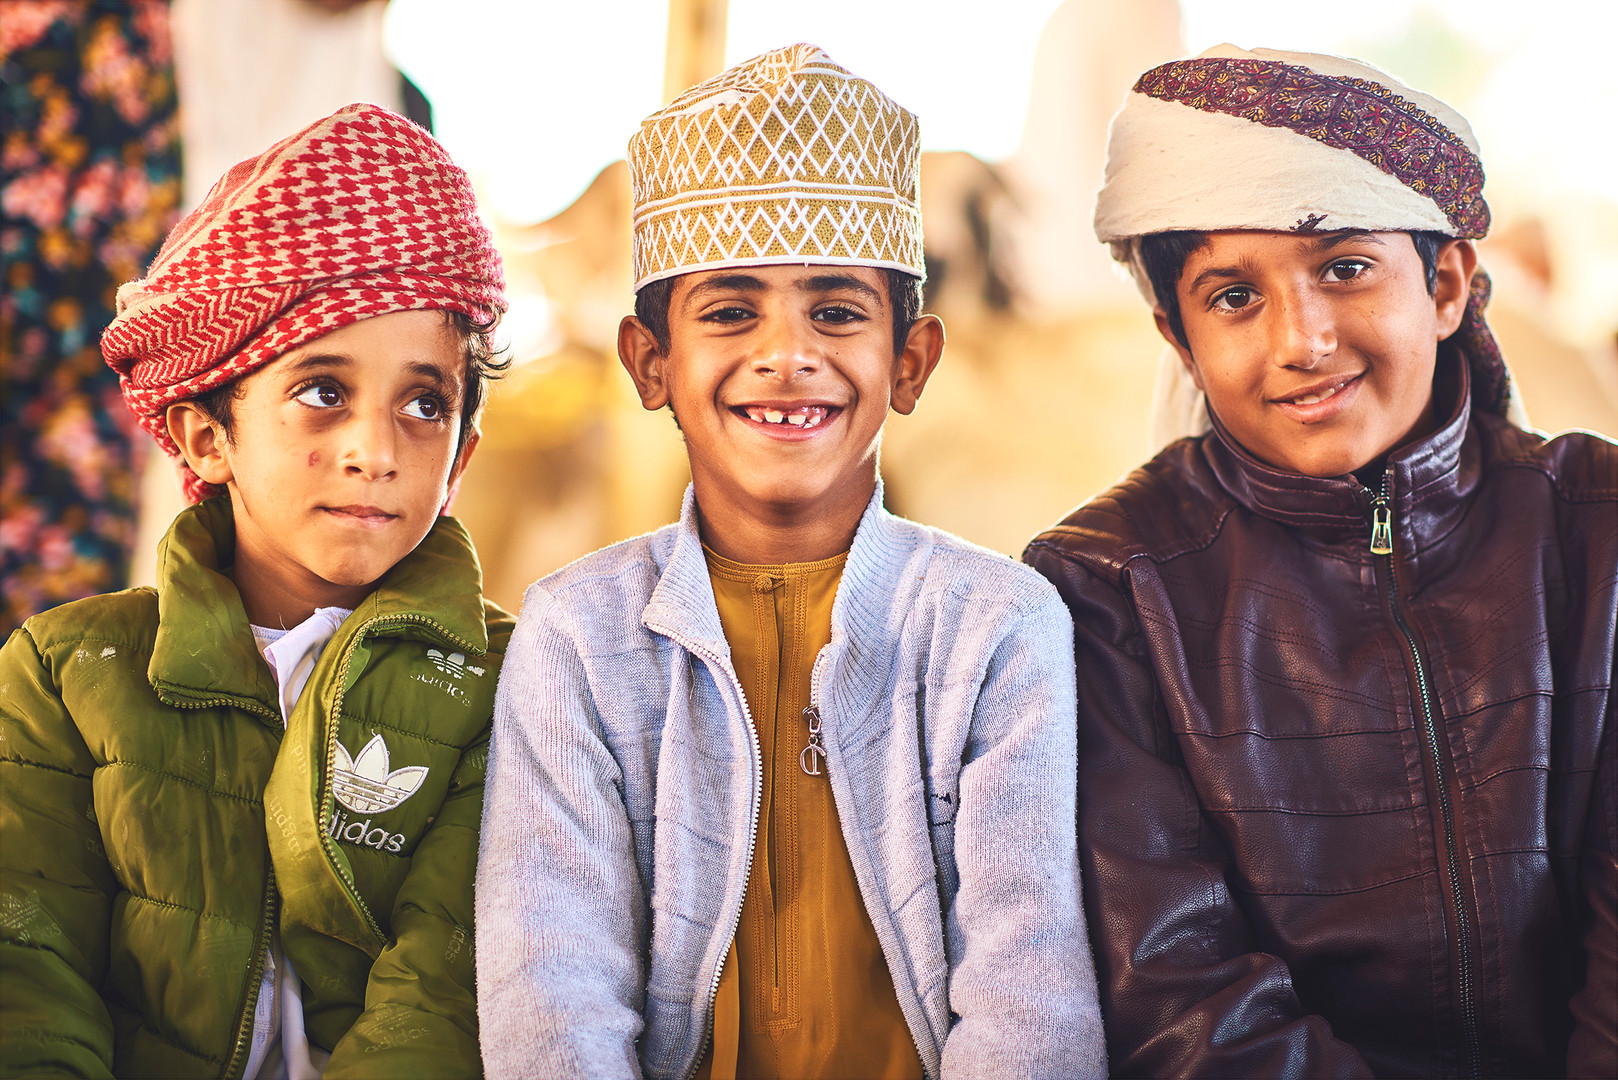 Kids at the live stock market, Oman